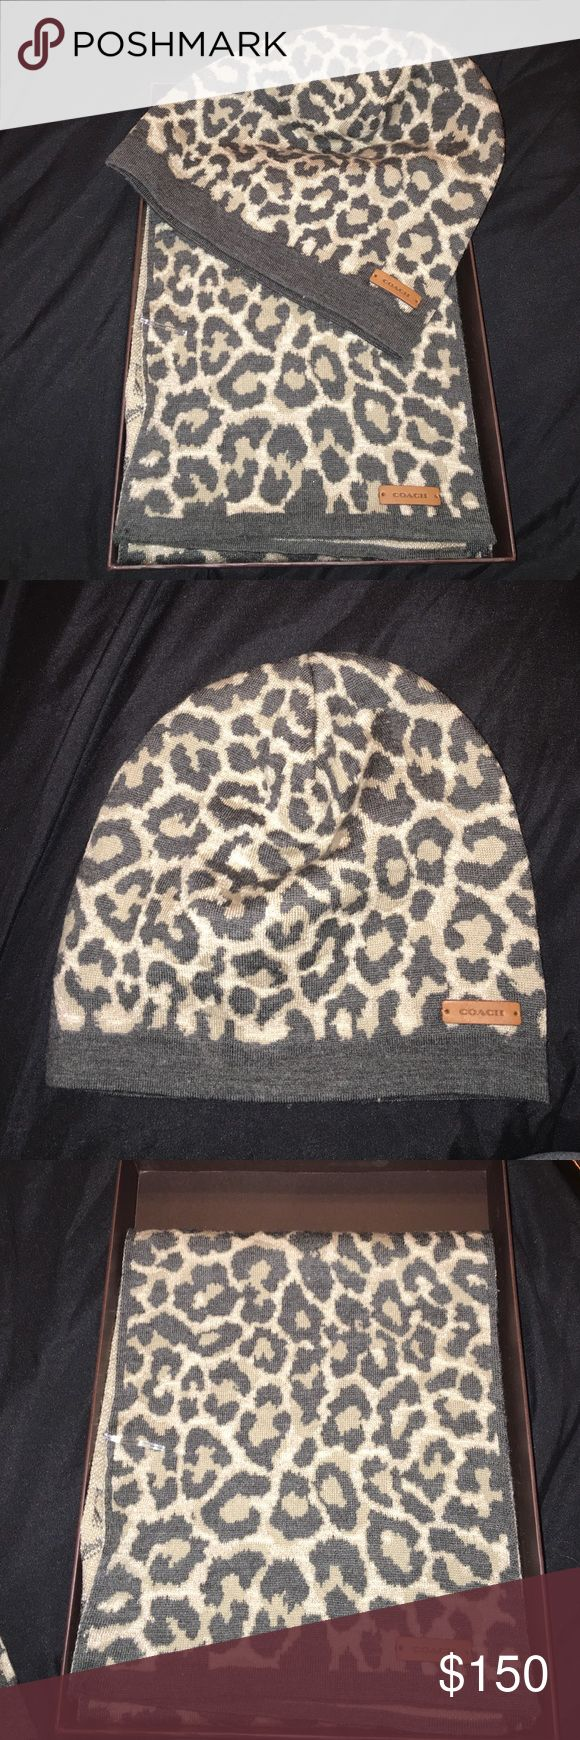 Coach hat & scarf Brand new.. never worn Accessories Scarves & Wraps